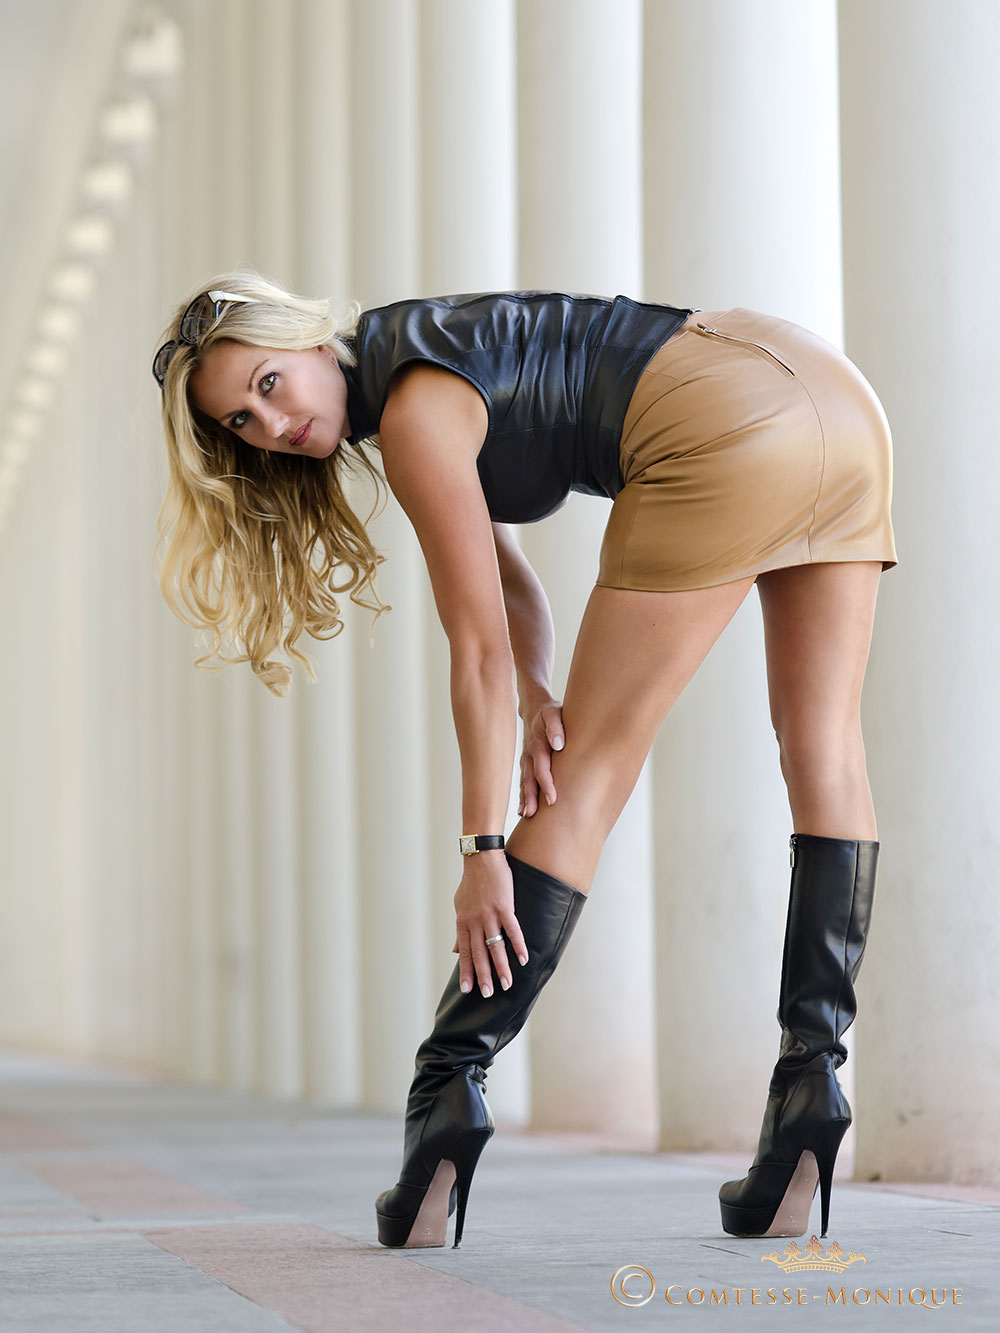 Bosomy blonde office babe in knee high black boots unleashes huge hooters № 10658 бесплатно